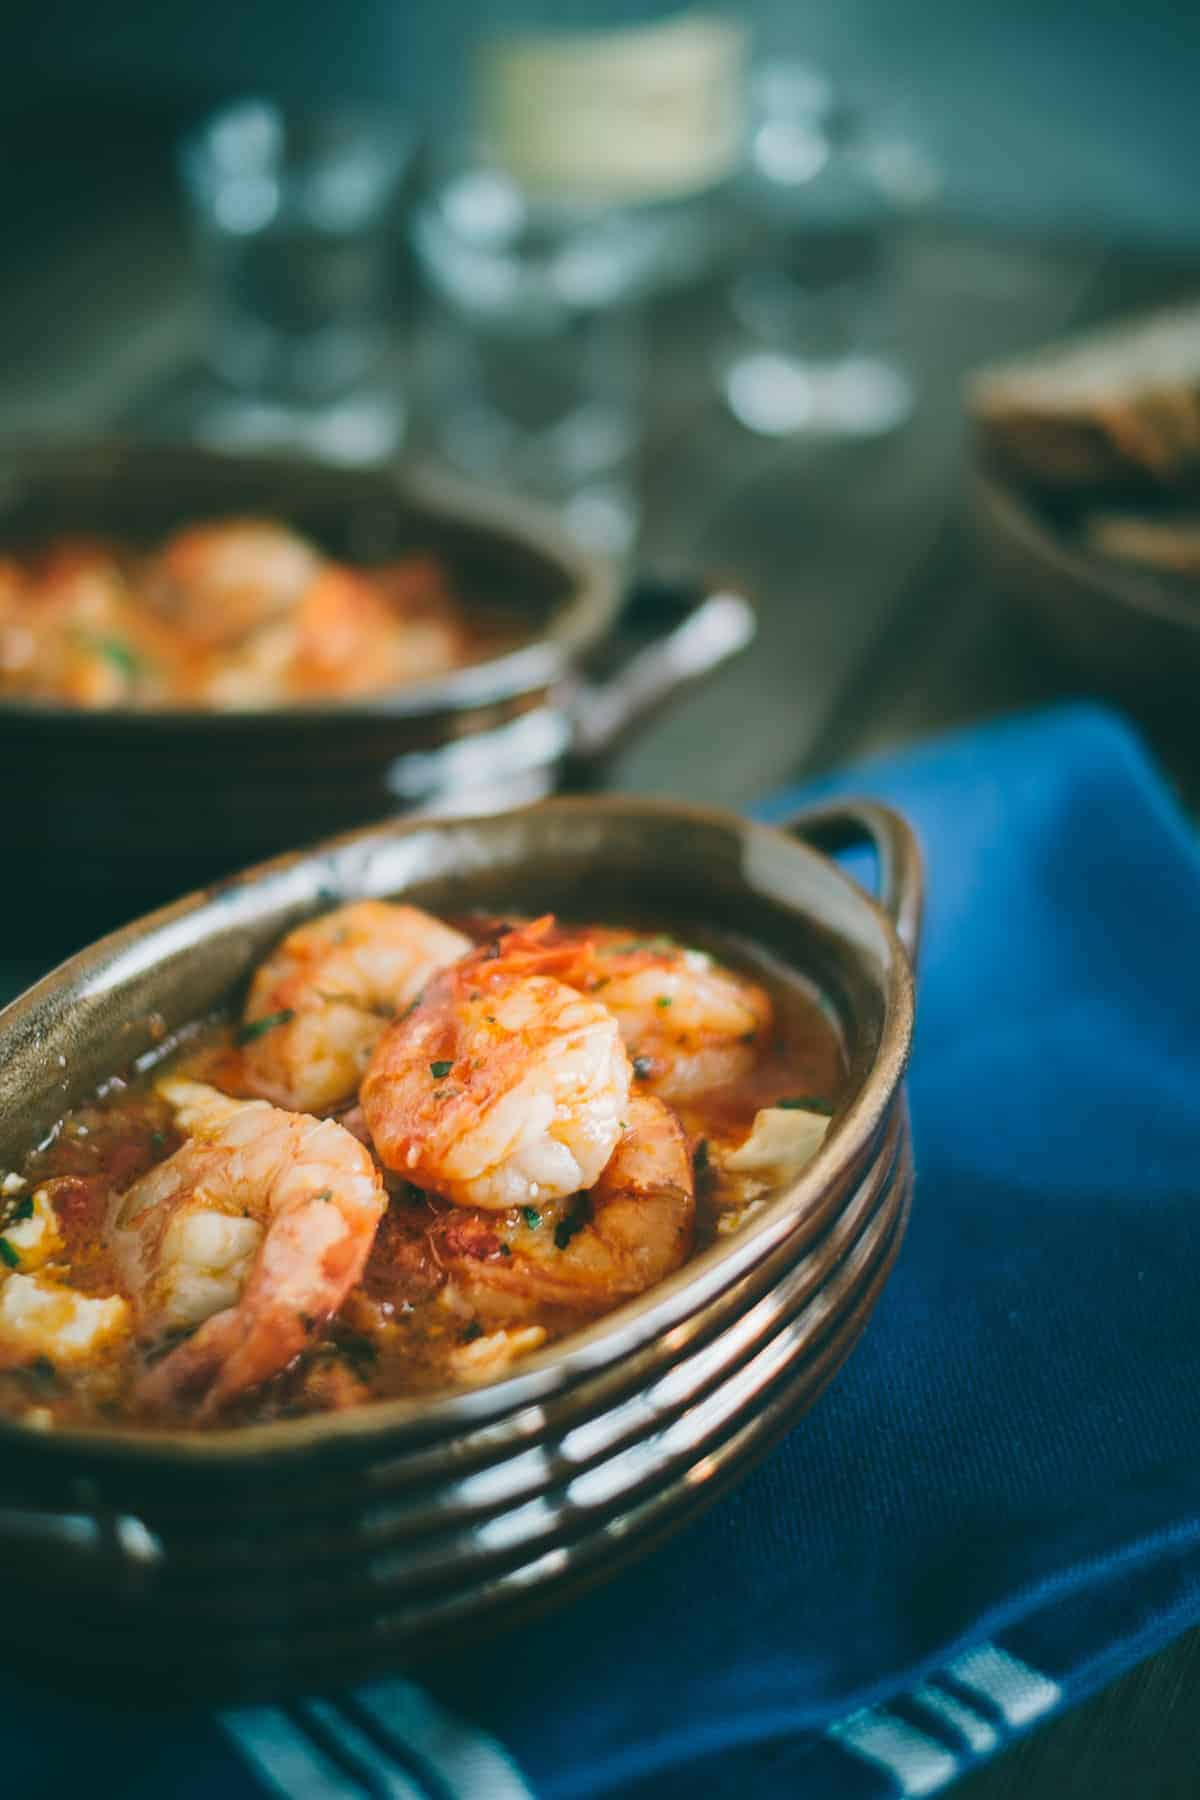 Prawn saganaki served in a claypot dish